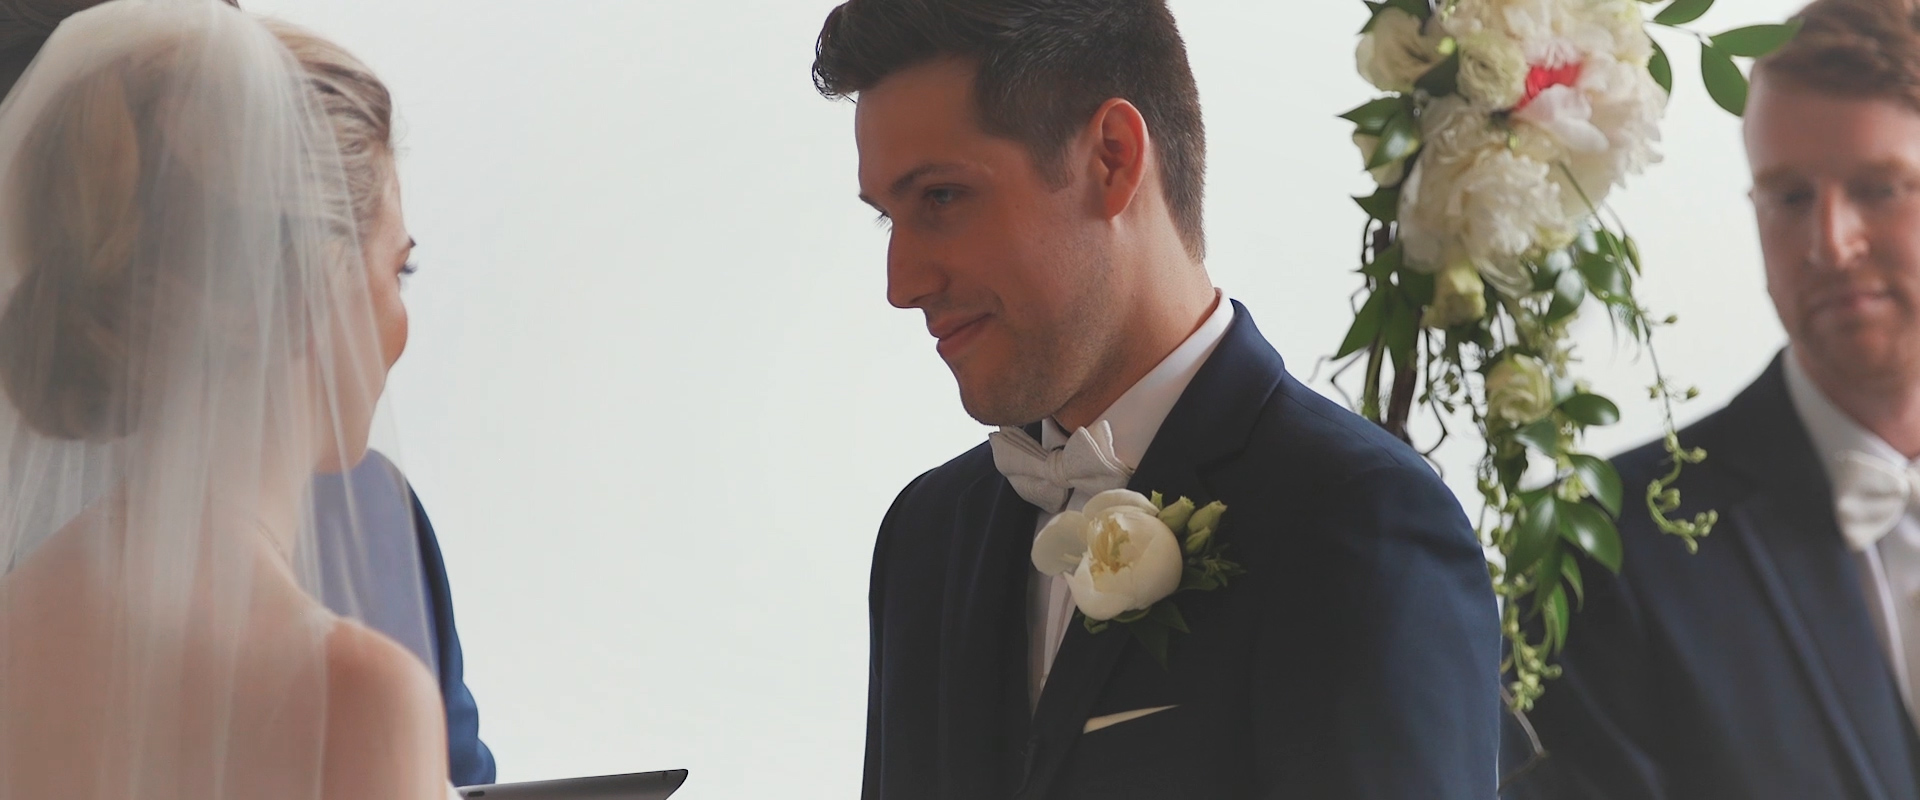 An image of a groom reciting his vows during his wedding reception; taken from a Toronto Wedding Video